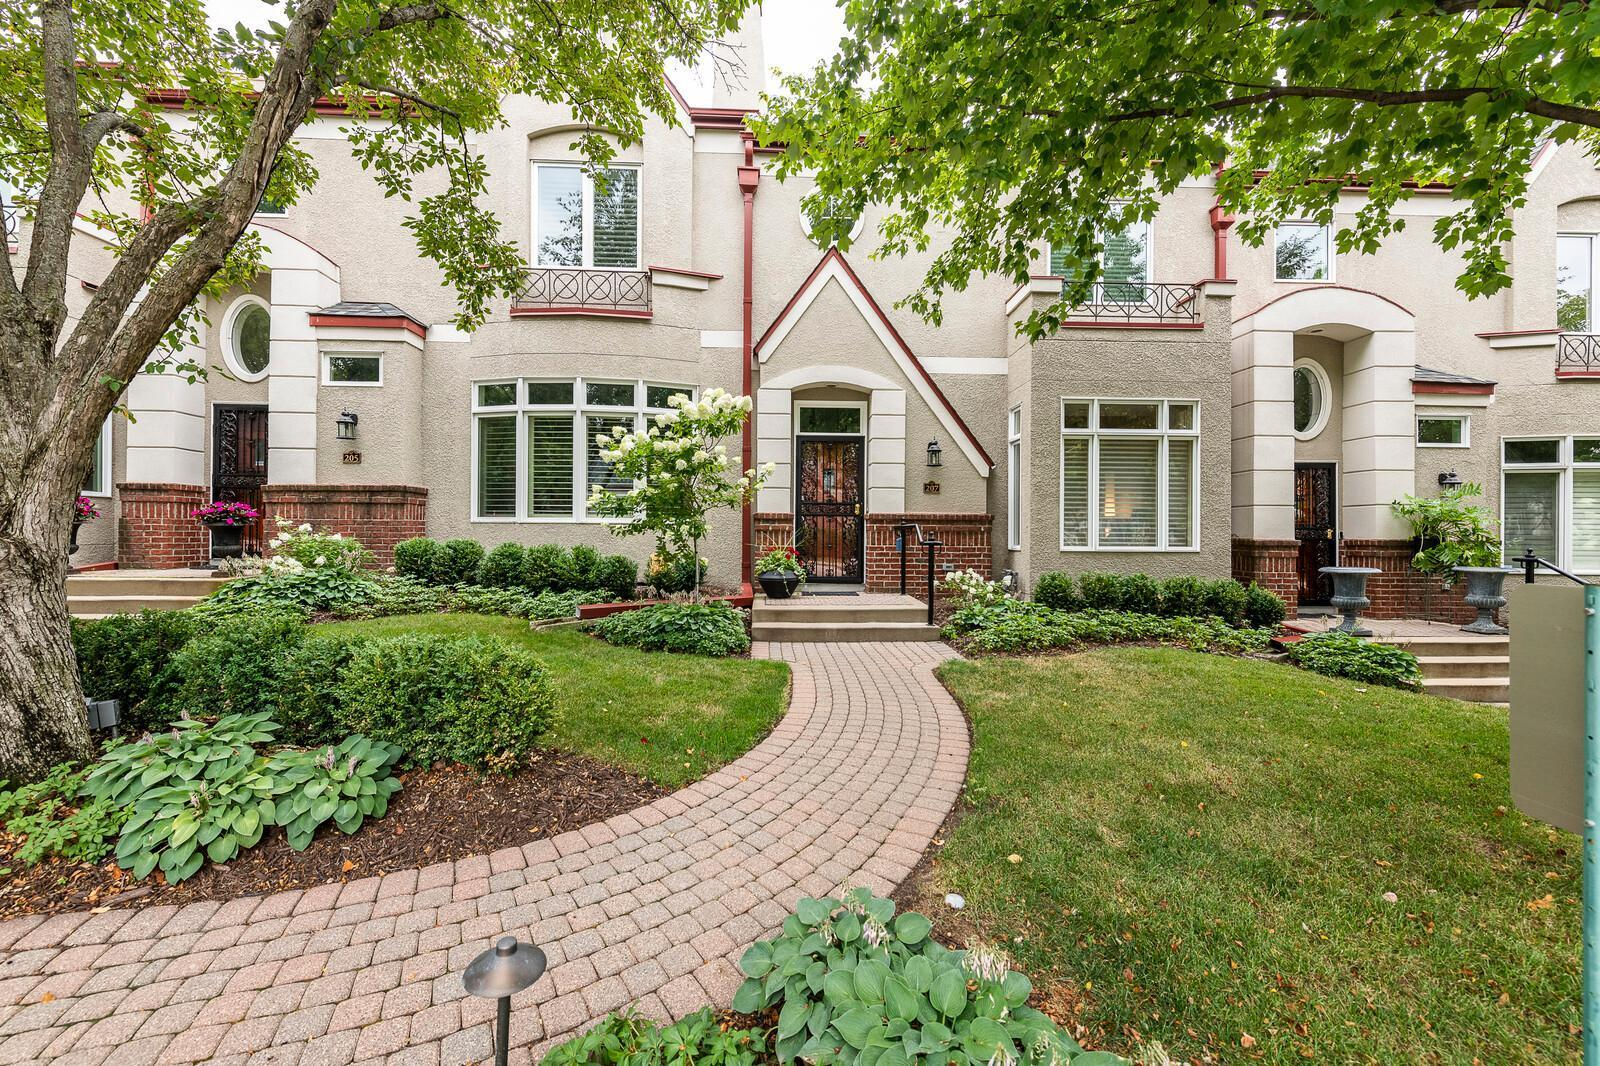 207 Coventry Court, Edina, Minnesota 55435, 2 Bedrooms Bedrooms, ,2 BathroomsBathrooms,Residential,For Sale,Coventry,NST6070497